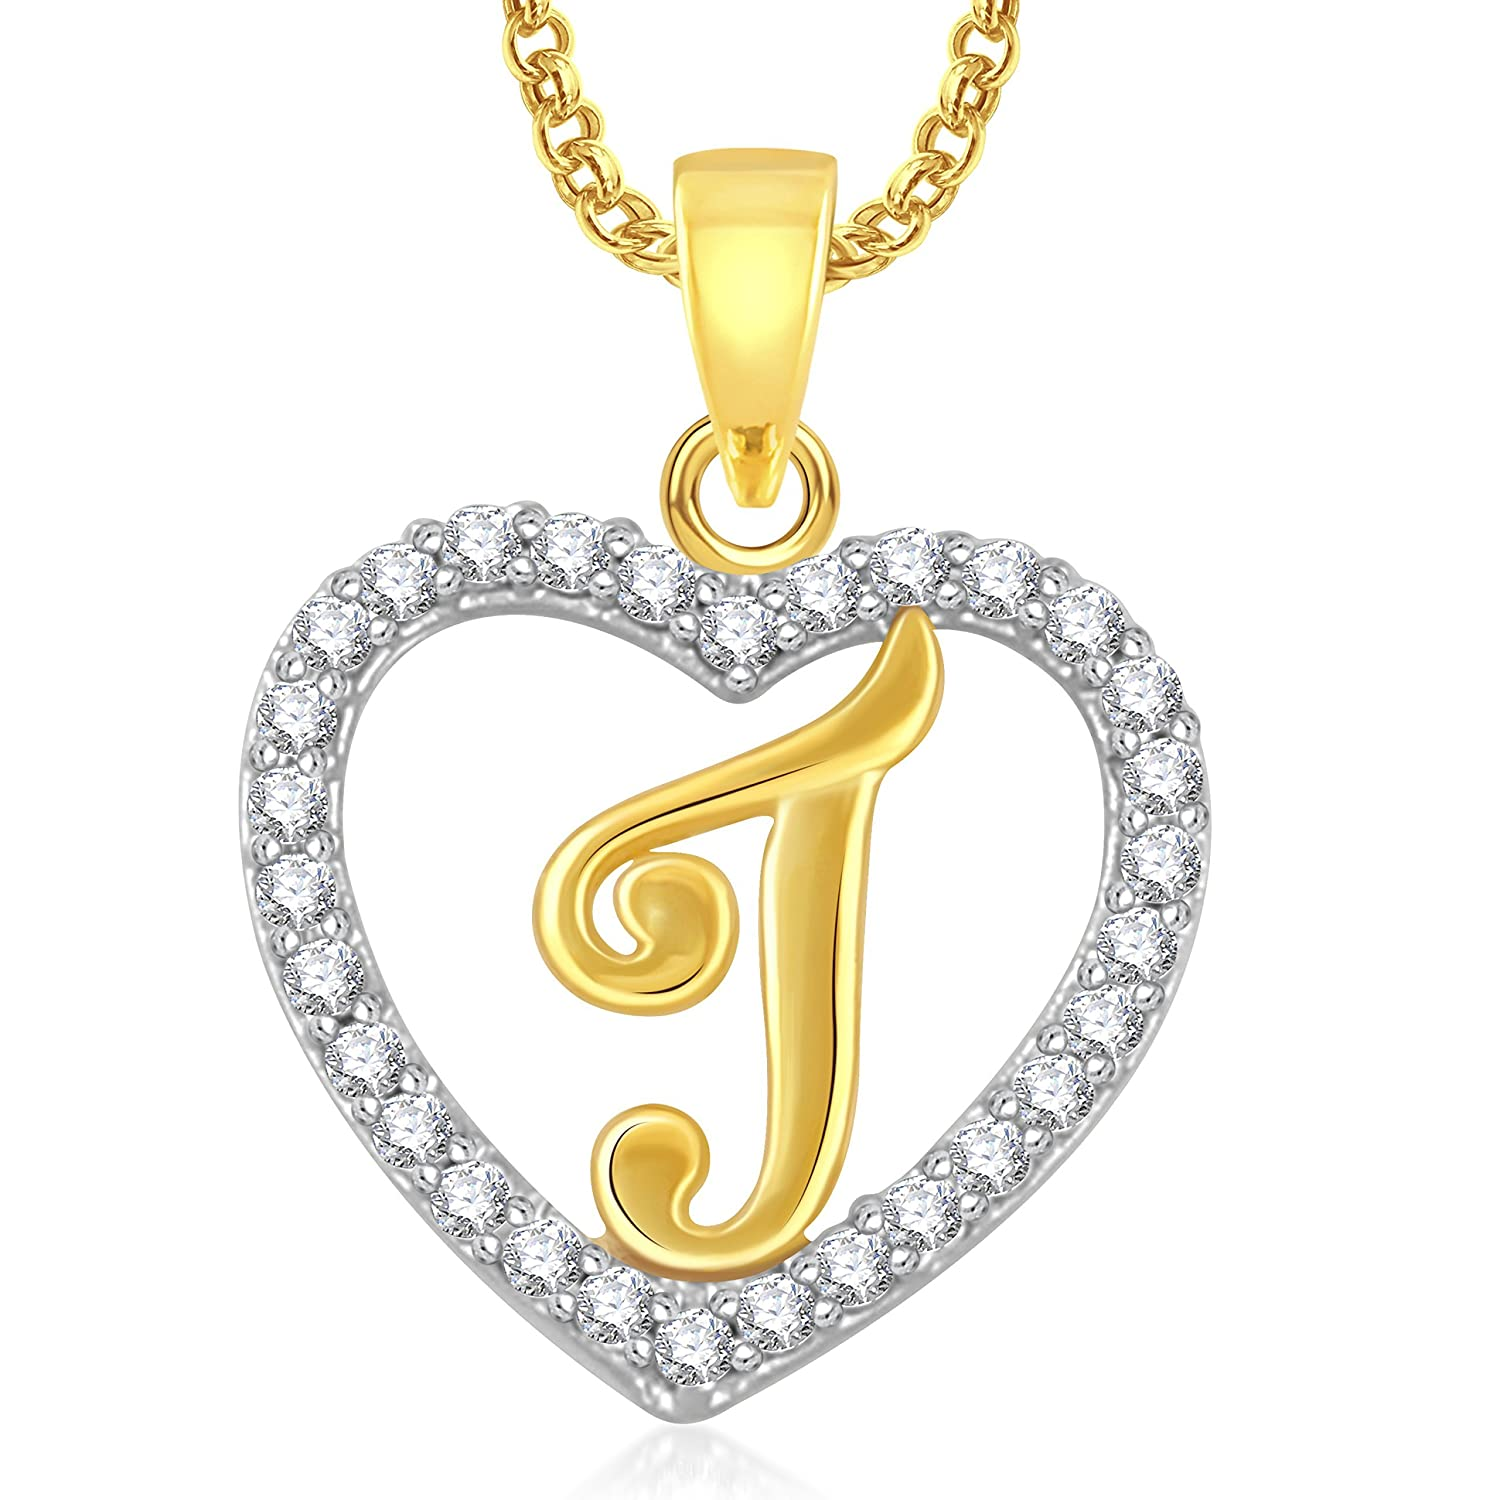 p heart gold lockets jewellers the pendant beaverbrooks large chain locket context